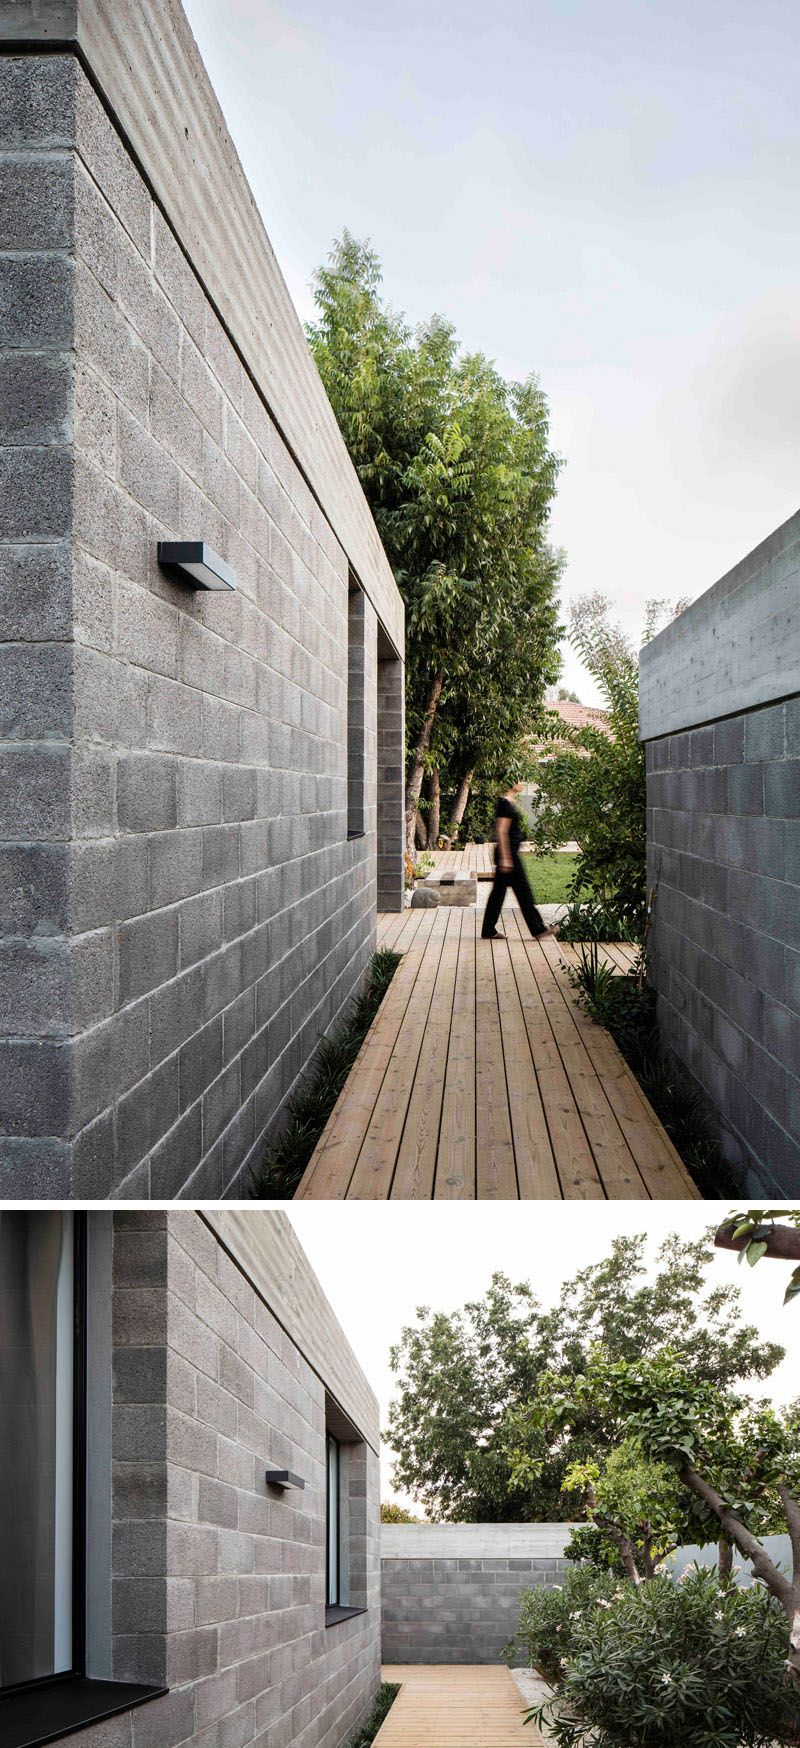 Unfinished Concrete Gives This House An Industrial Feeling Concrete Houses Architect House Cinder Block House